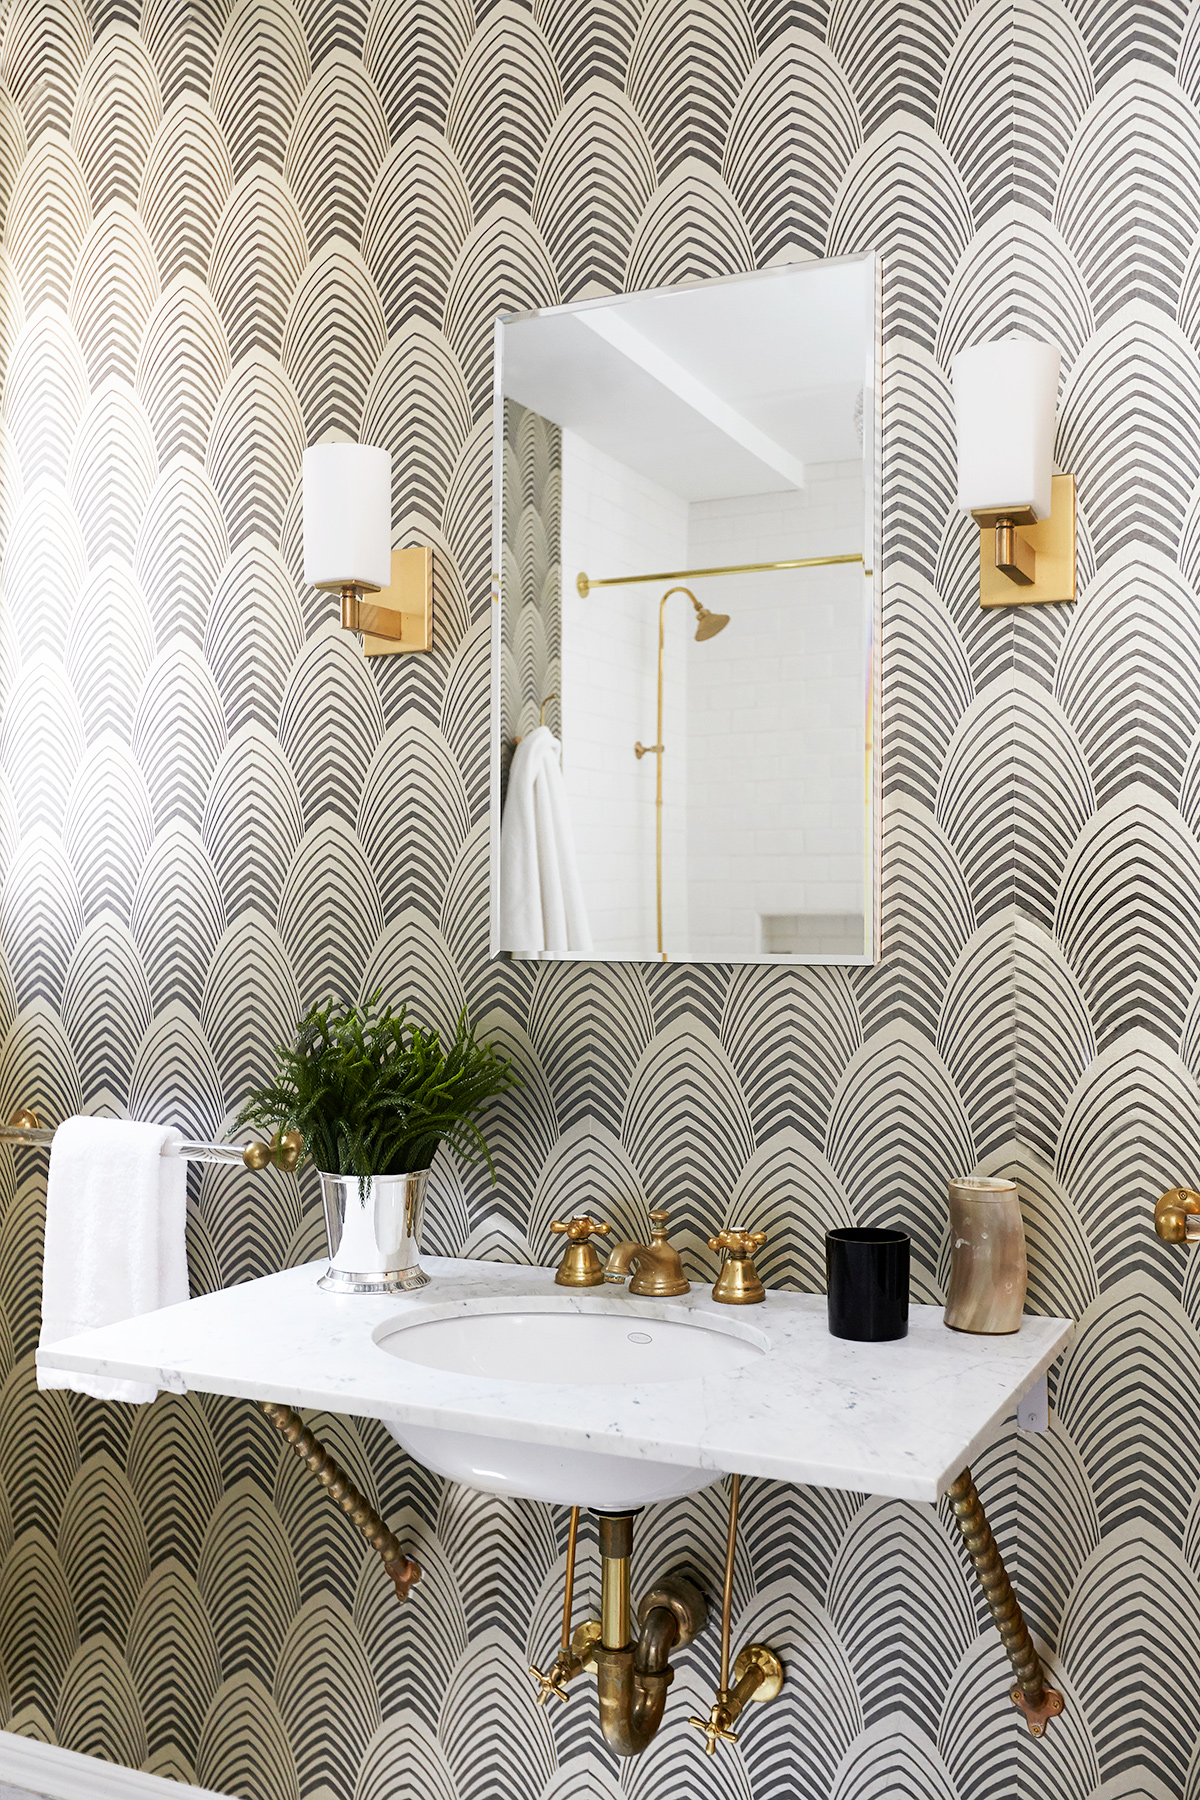 Eye-Catching Black and White Bathroom Wallpaper | Modern Bathroom Ideas | Wallpapered Inspiration | Bathroom that will make you want to renovate | Gold Bathroom Hardware